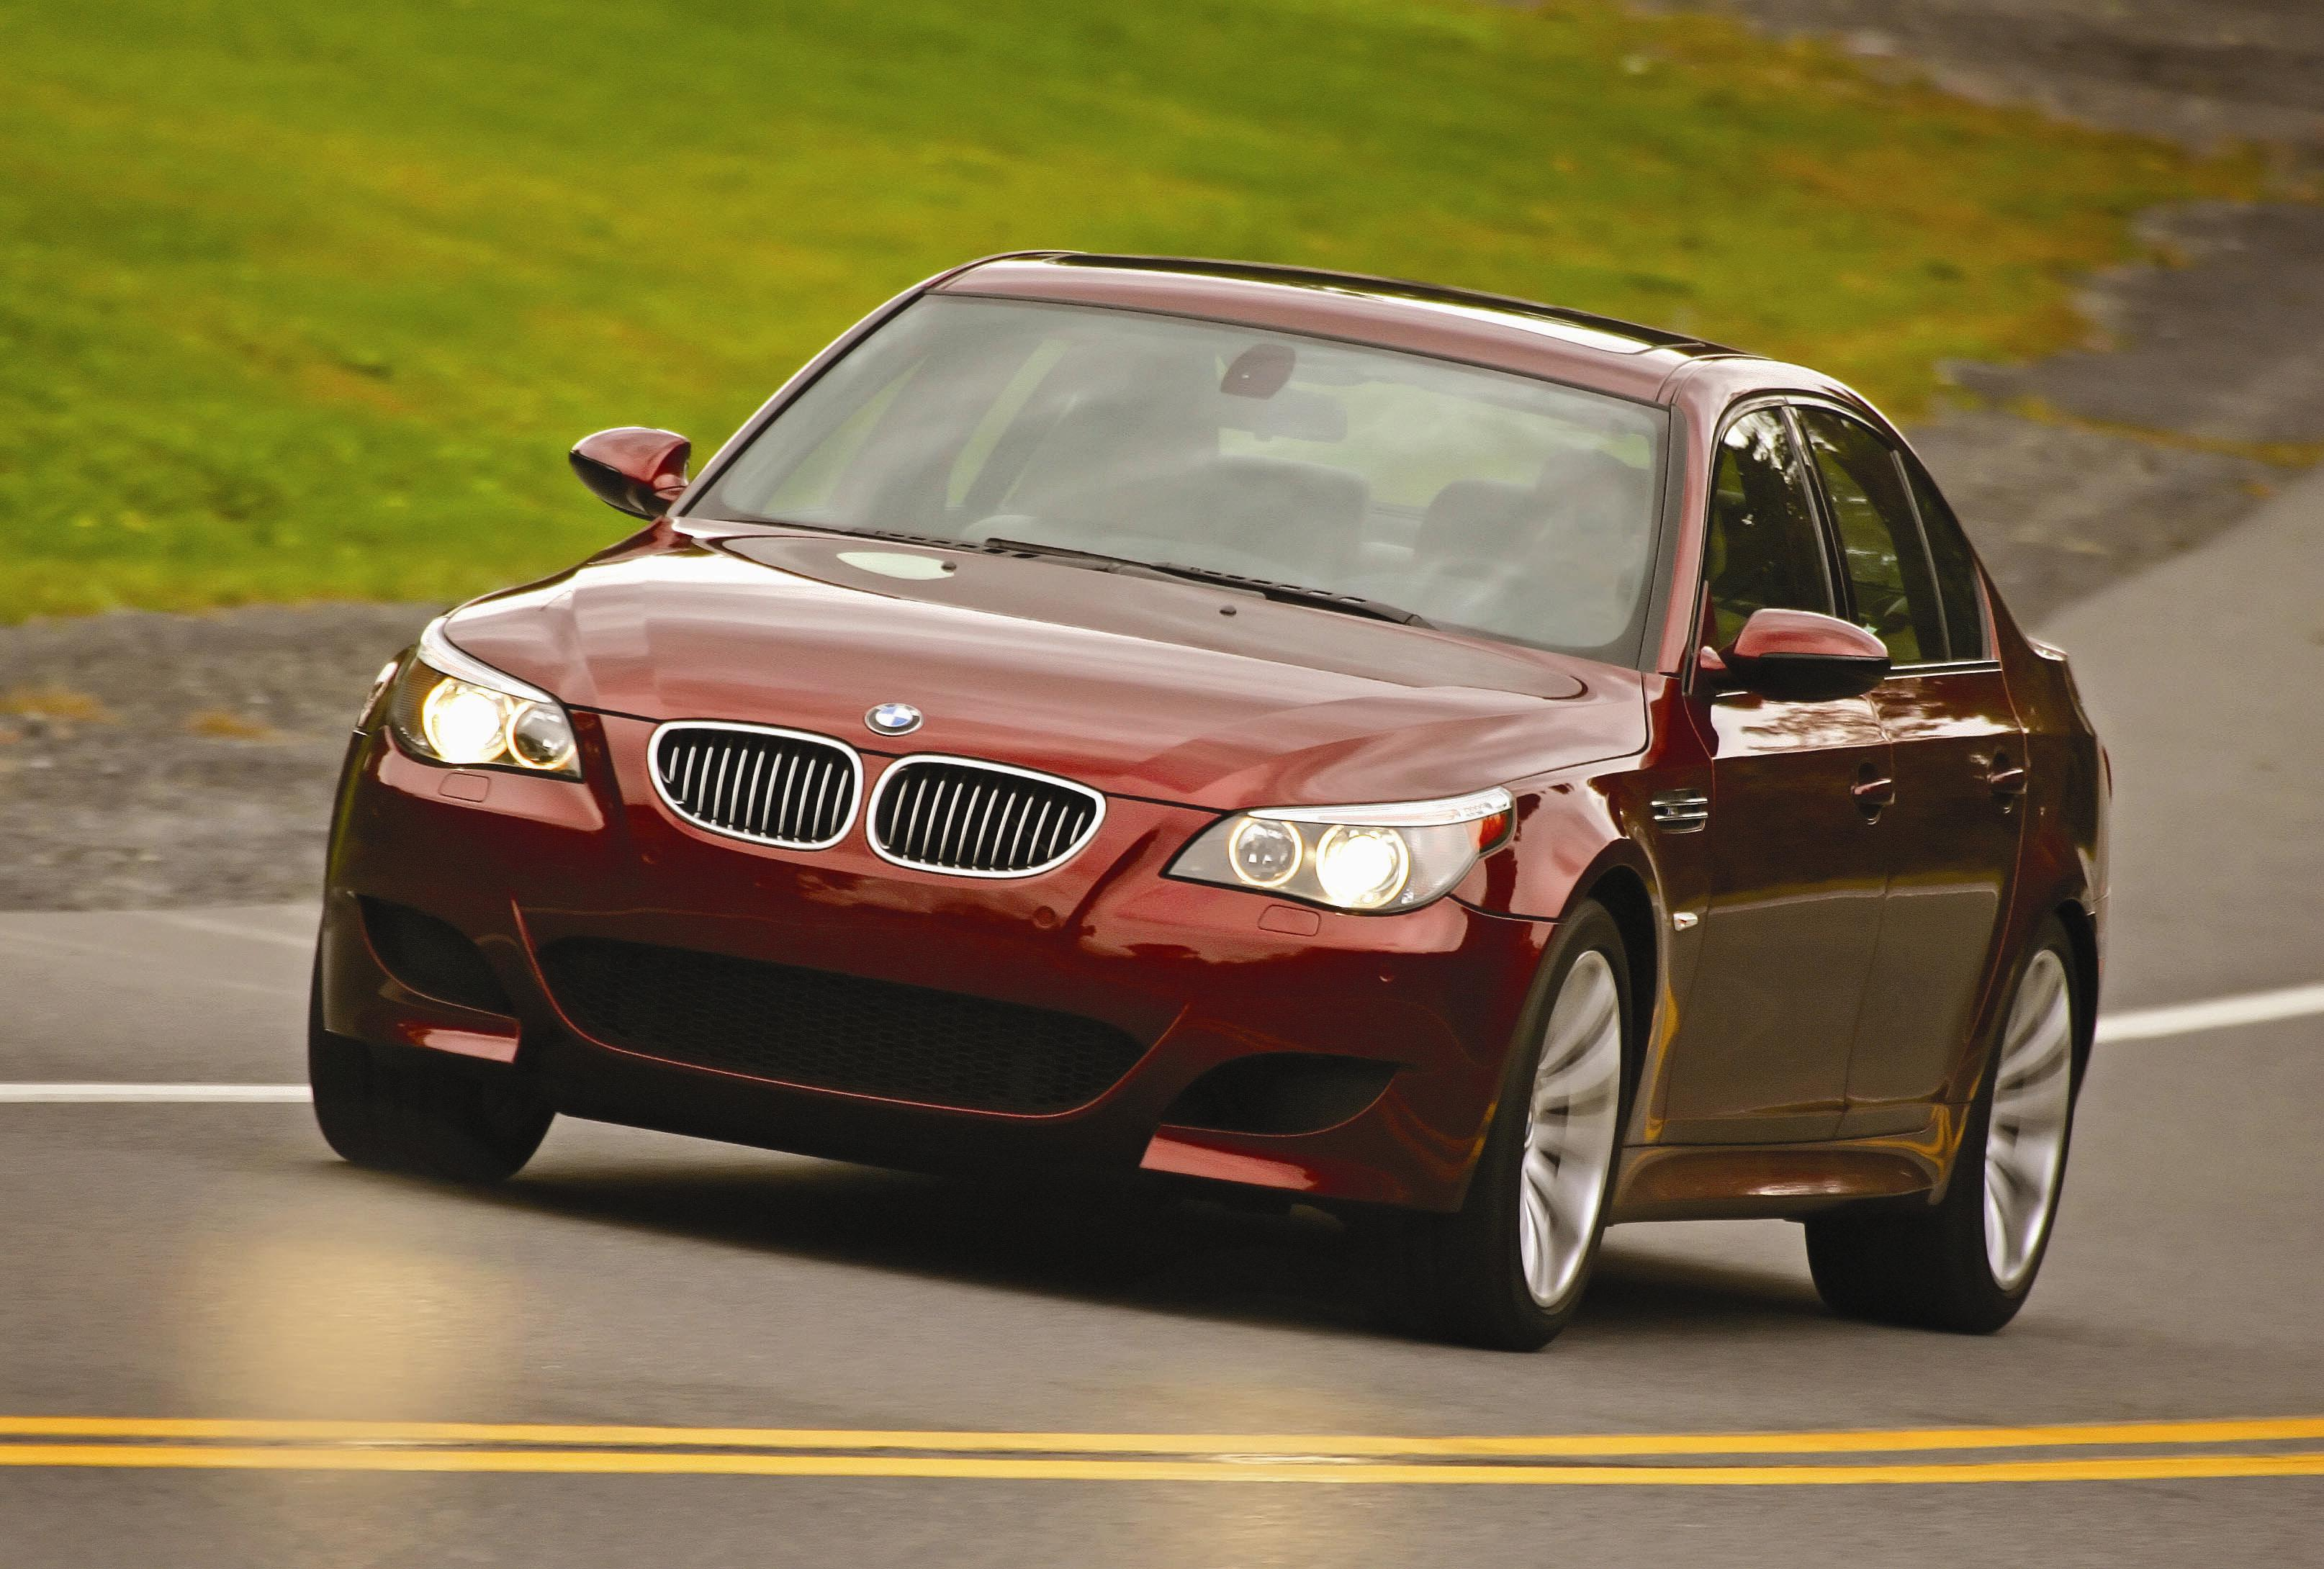 Full Form Of Bmw In Puter >> 2007 Bmw M5 Top Speed